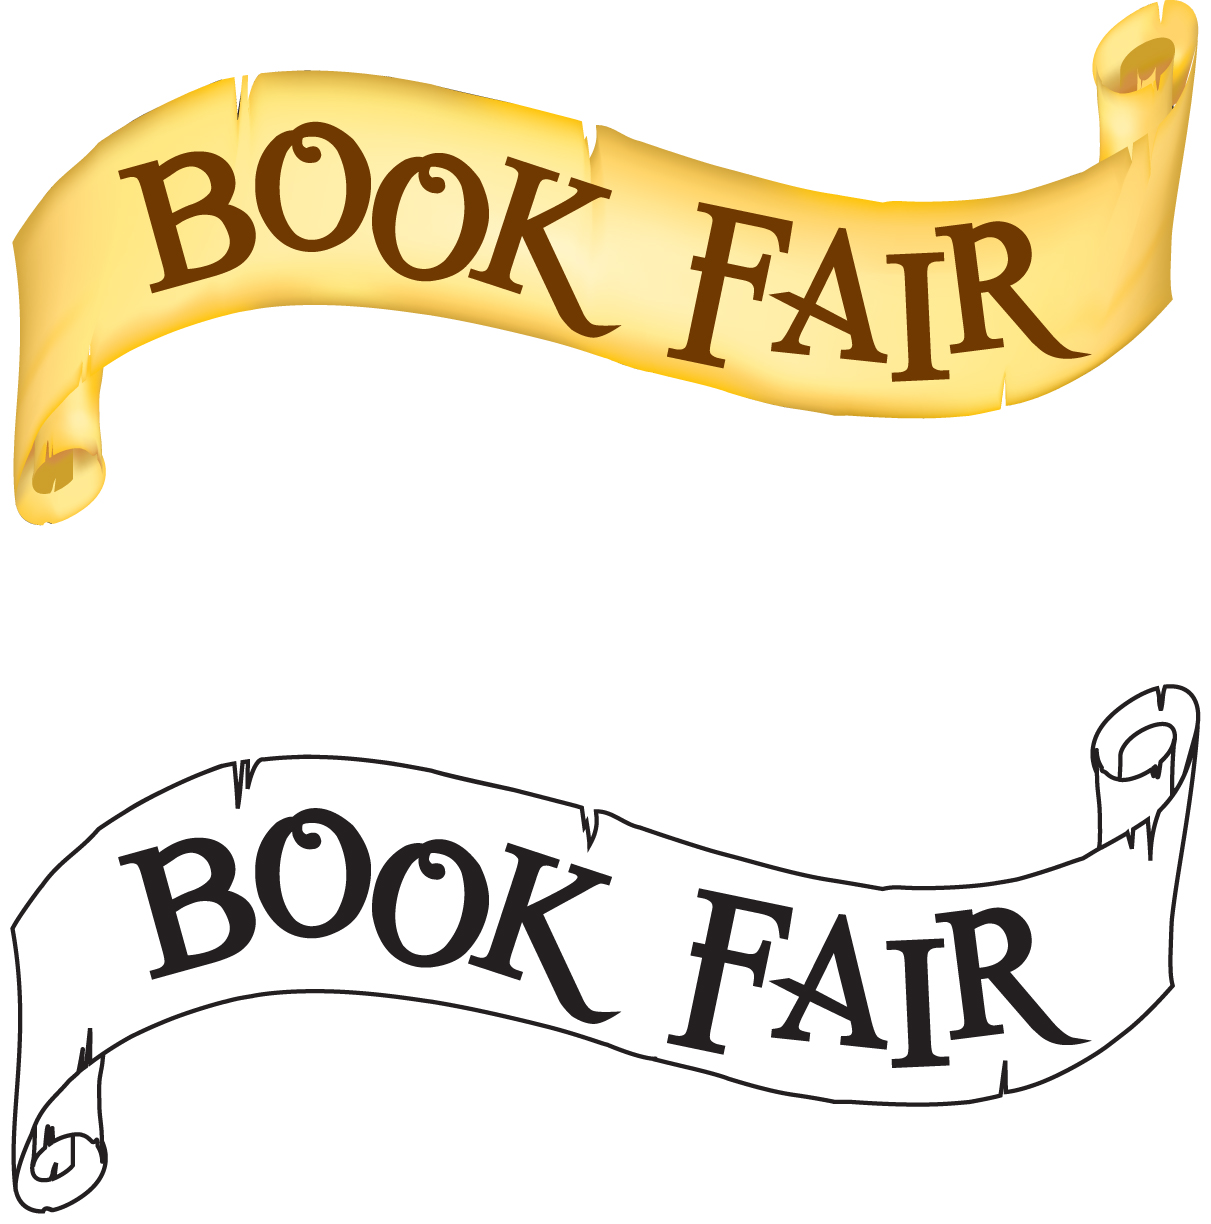 Book fair clipart images graphic free 6+ Book Fair Clip Art | ClipartLook graphic free